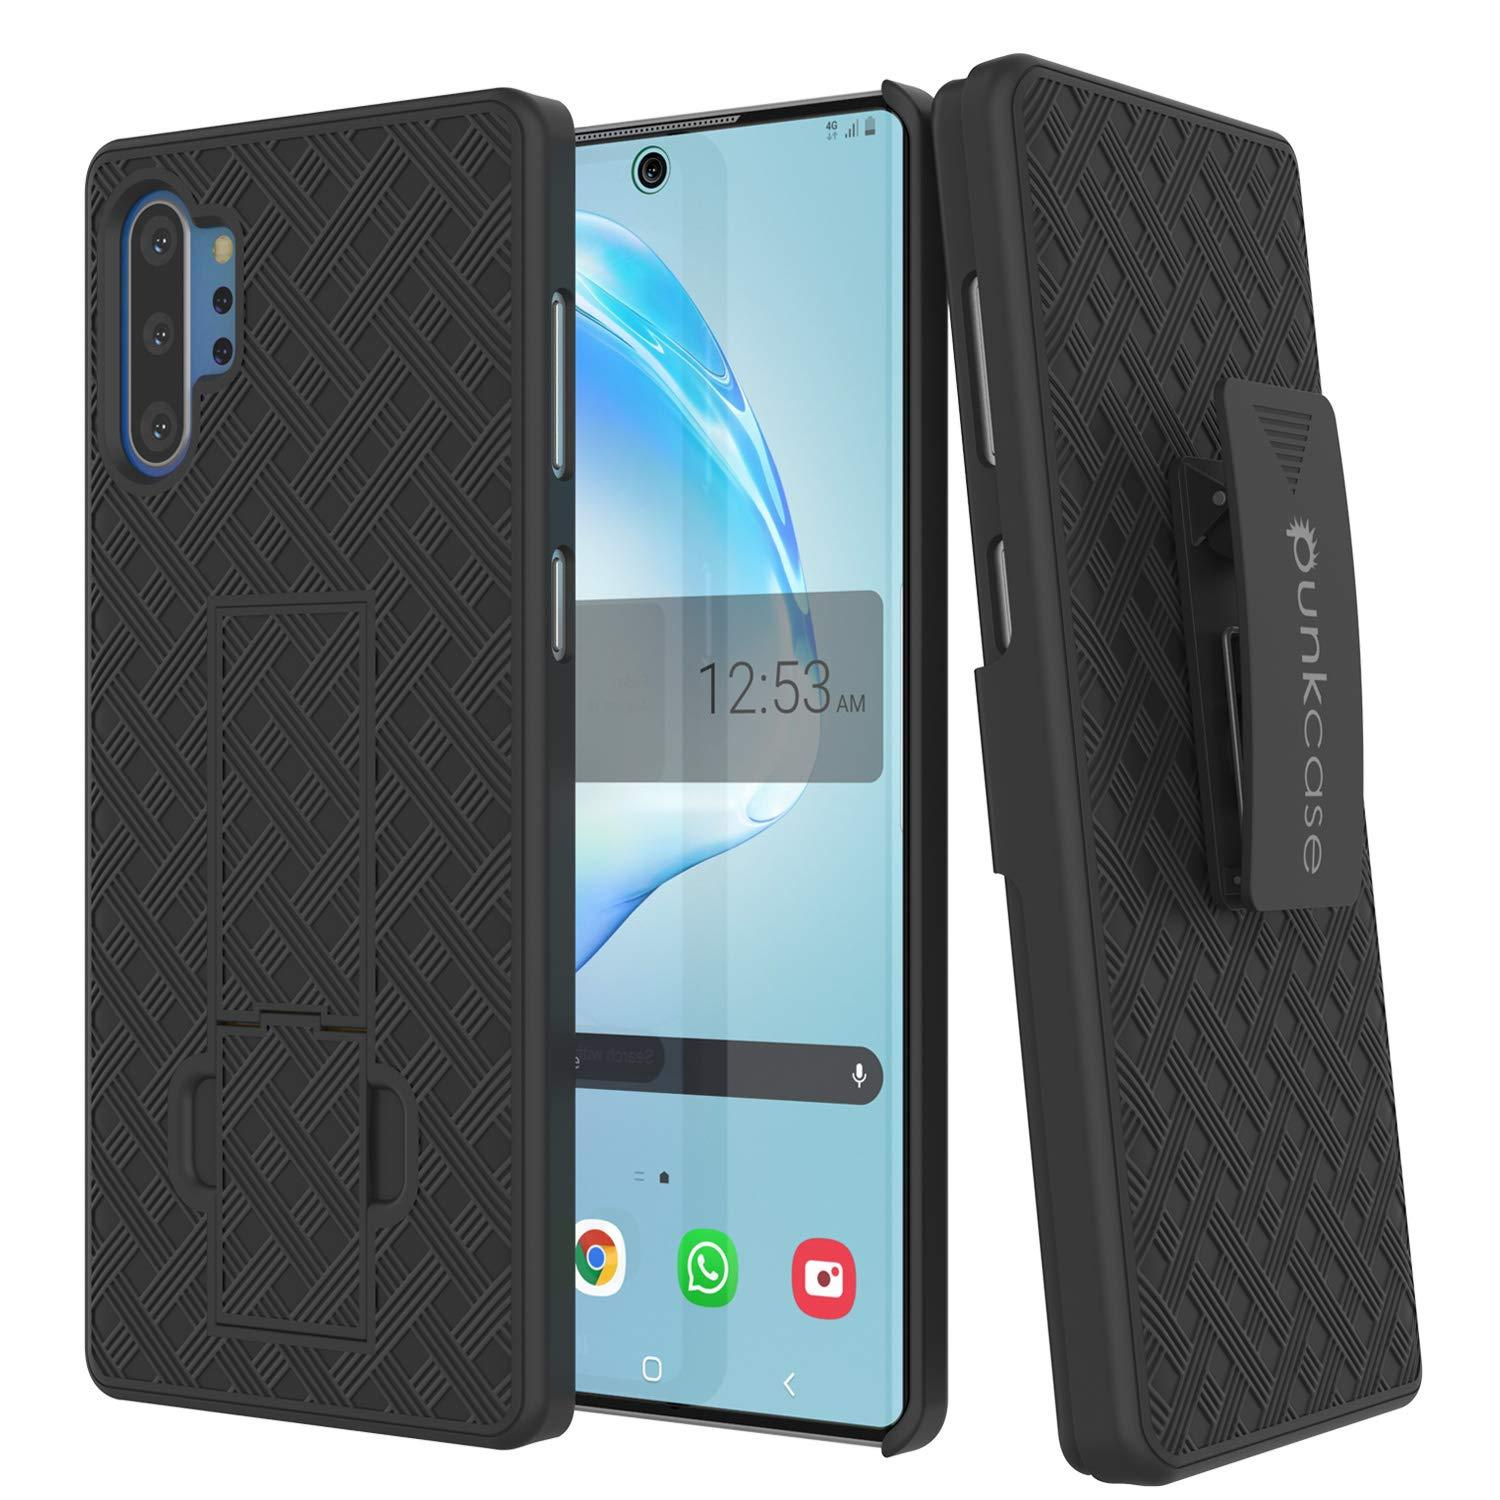 PunkCase Galaxy Note 20 Ultra Case with Screen Protector, Holster Belt Clip & Built-in Kickstand [Black]